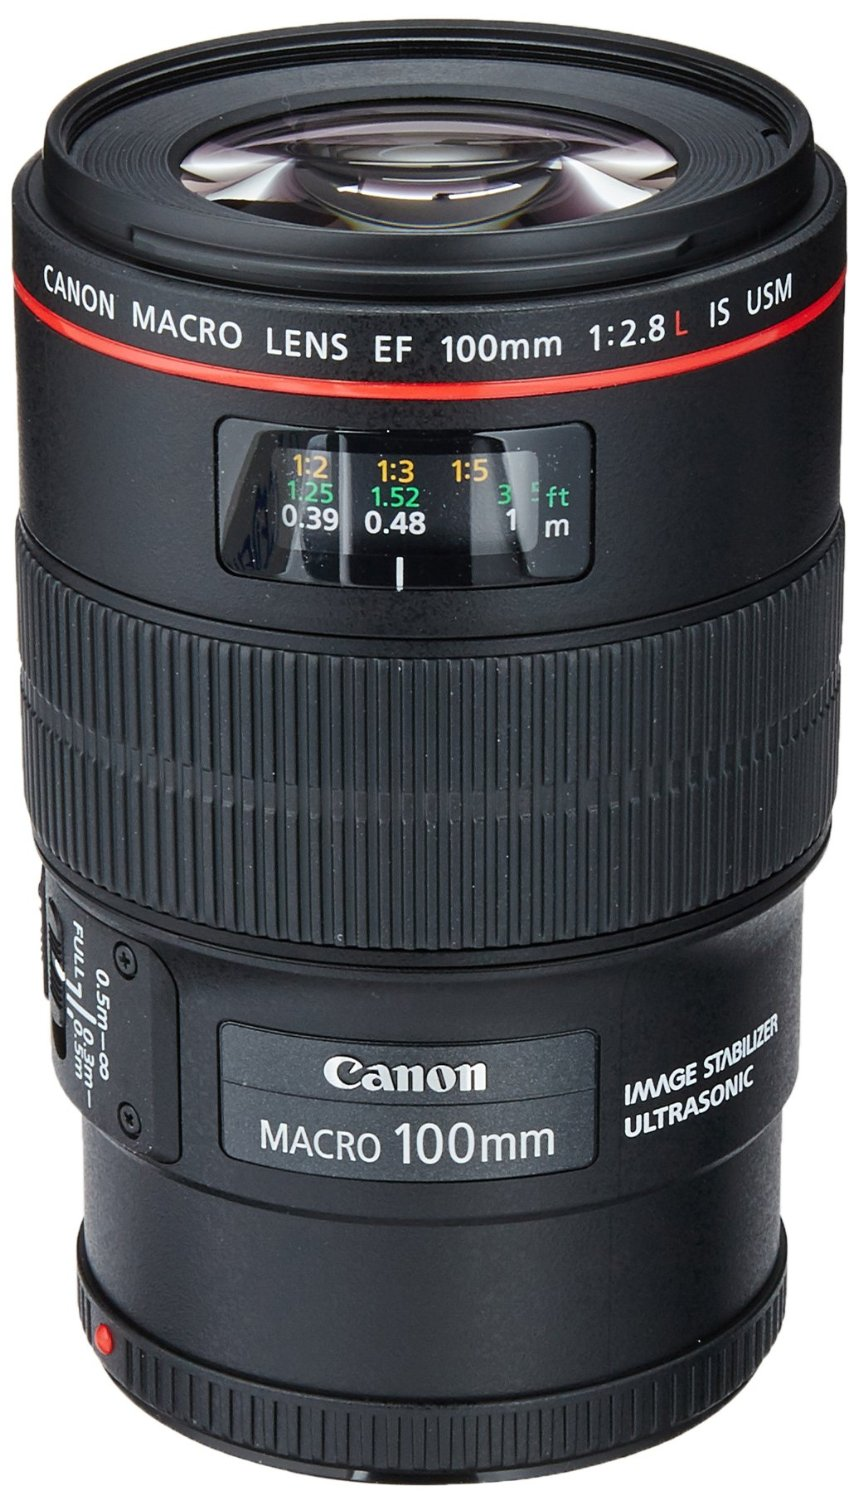 10 Best Macro Lenses For Canon Dslrs In 2018 Ratings Reviews Tamron 70 200mm F 28 Di Ld If Af Lens Nikon